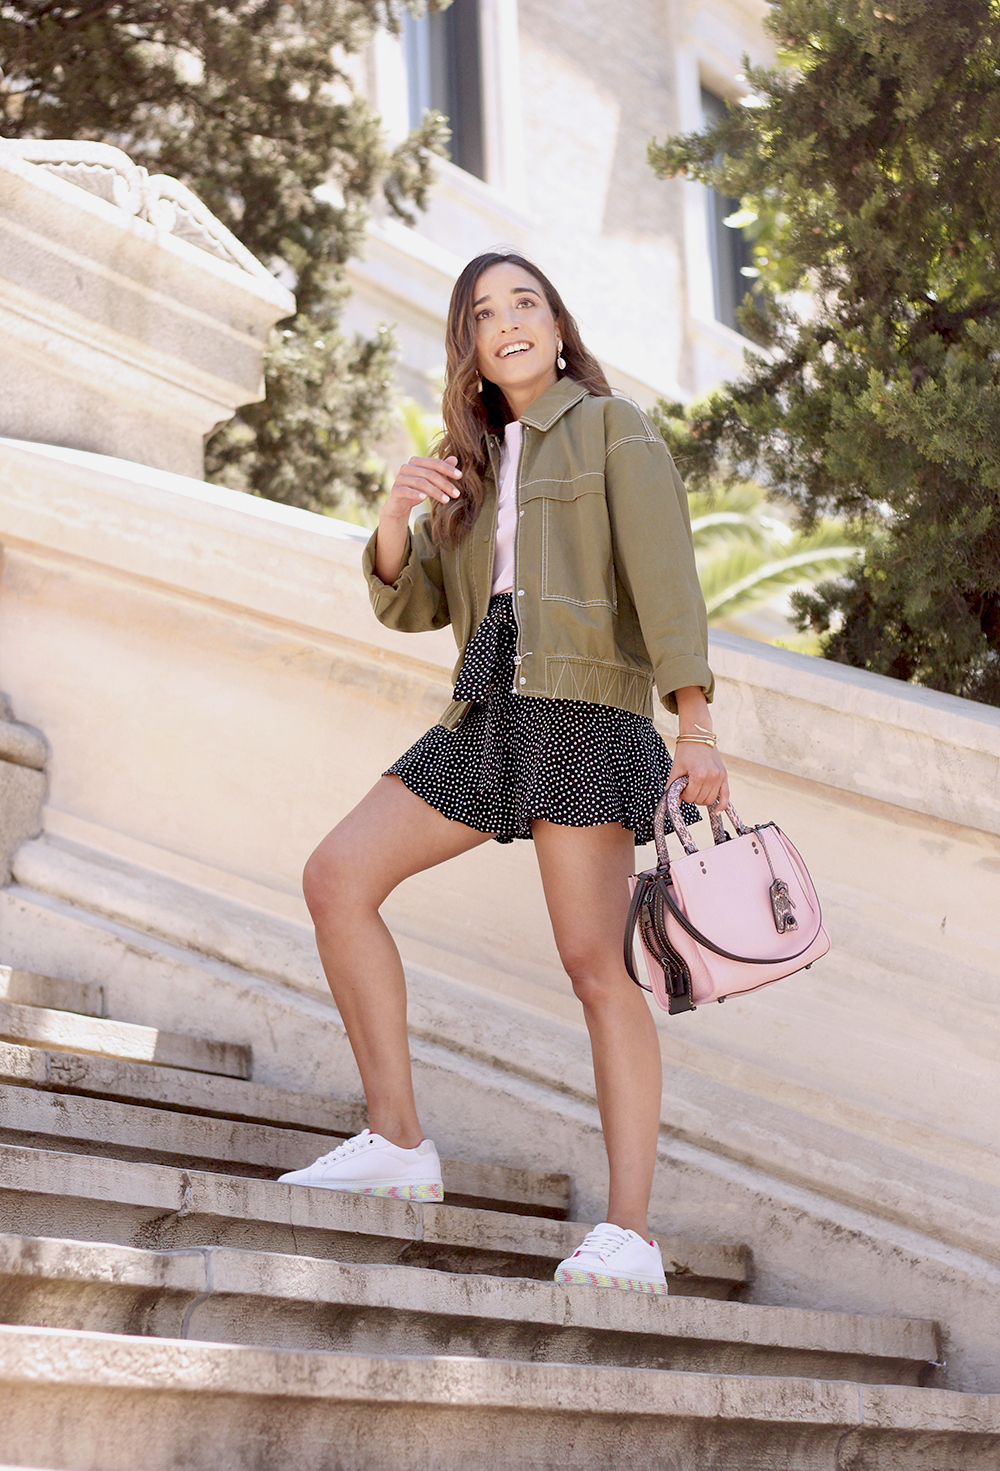 black shorts khaki jacket white sneakers street style outfit 20193